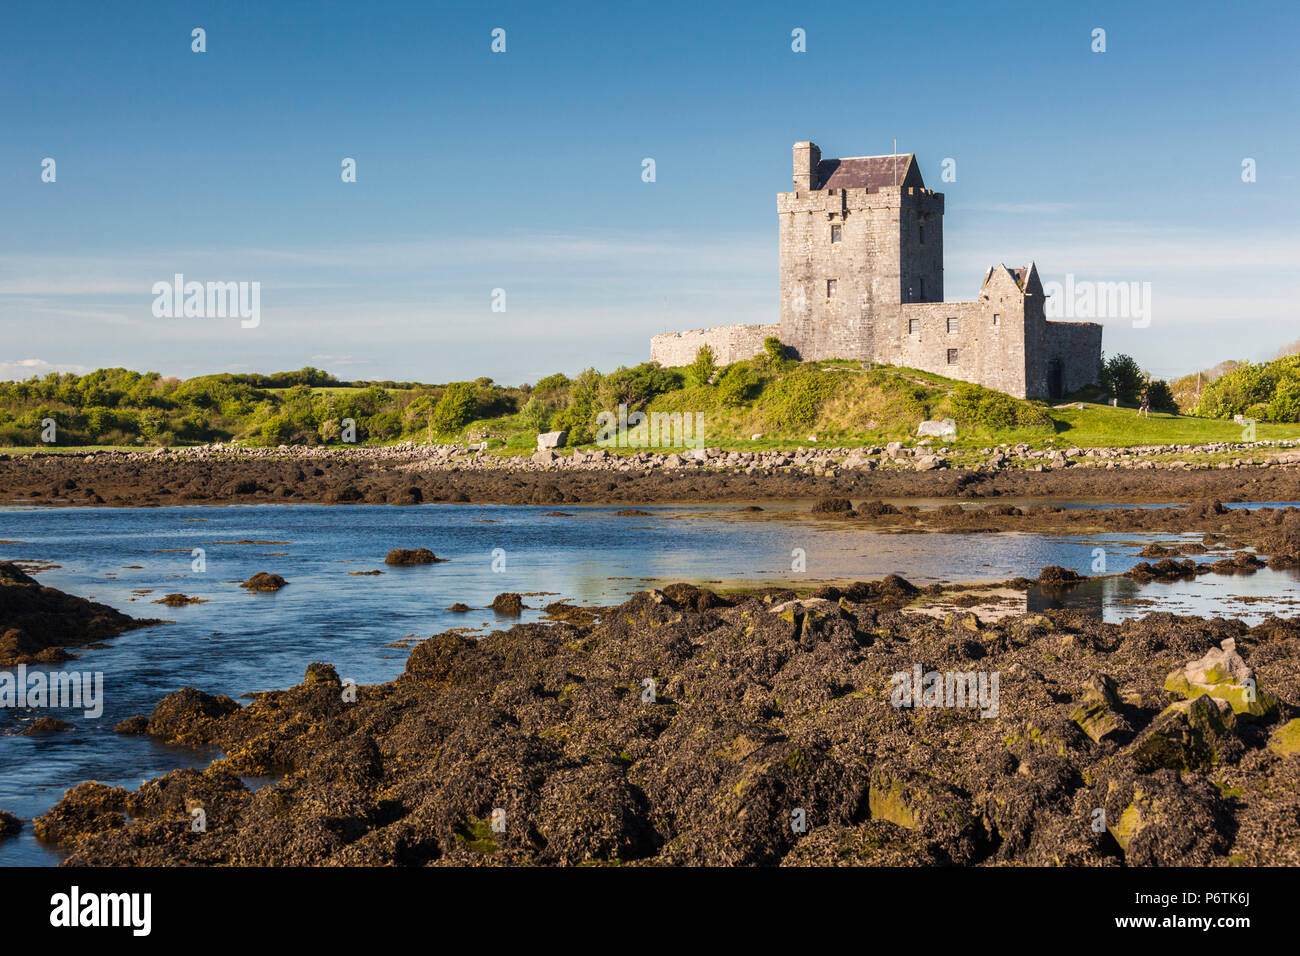 Ireland, County Galway, Kinvara, Dunguaire Castle - Stock Image